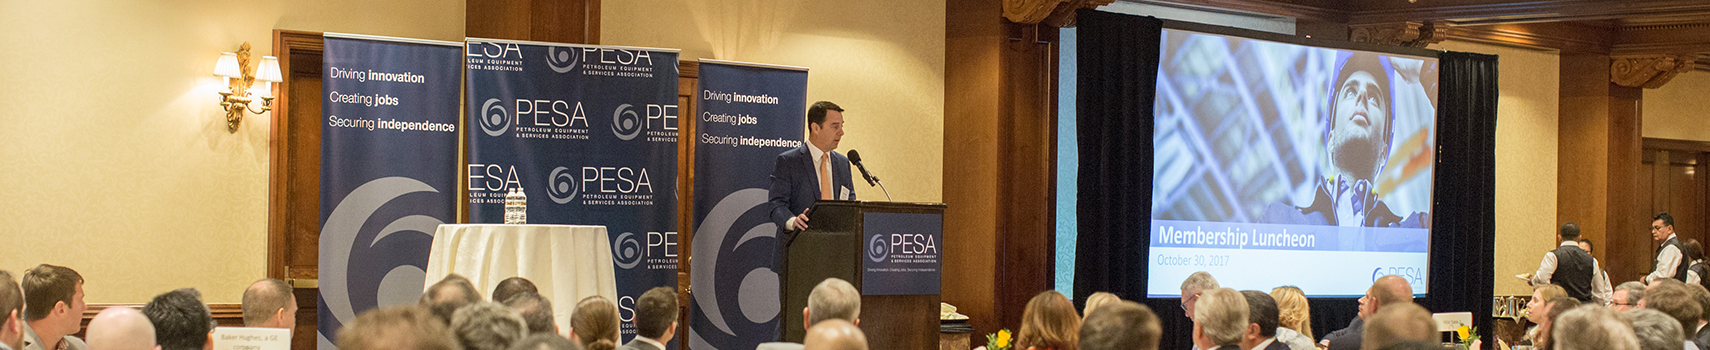 Donald Young, PESA Advisory Board Member and Chairman and CEO of Hoover Ferguson